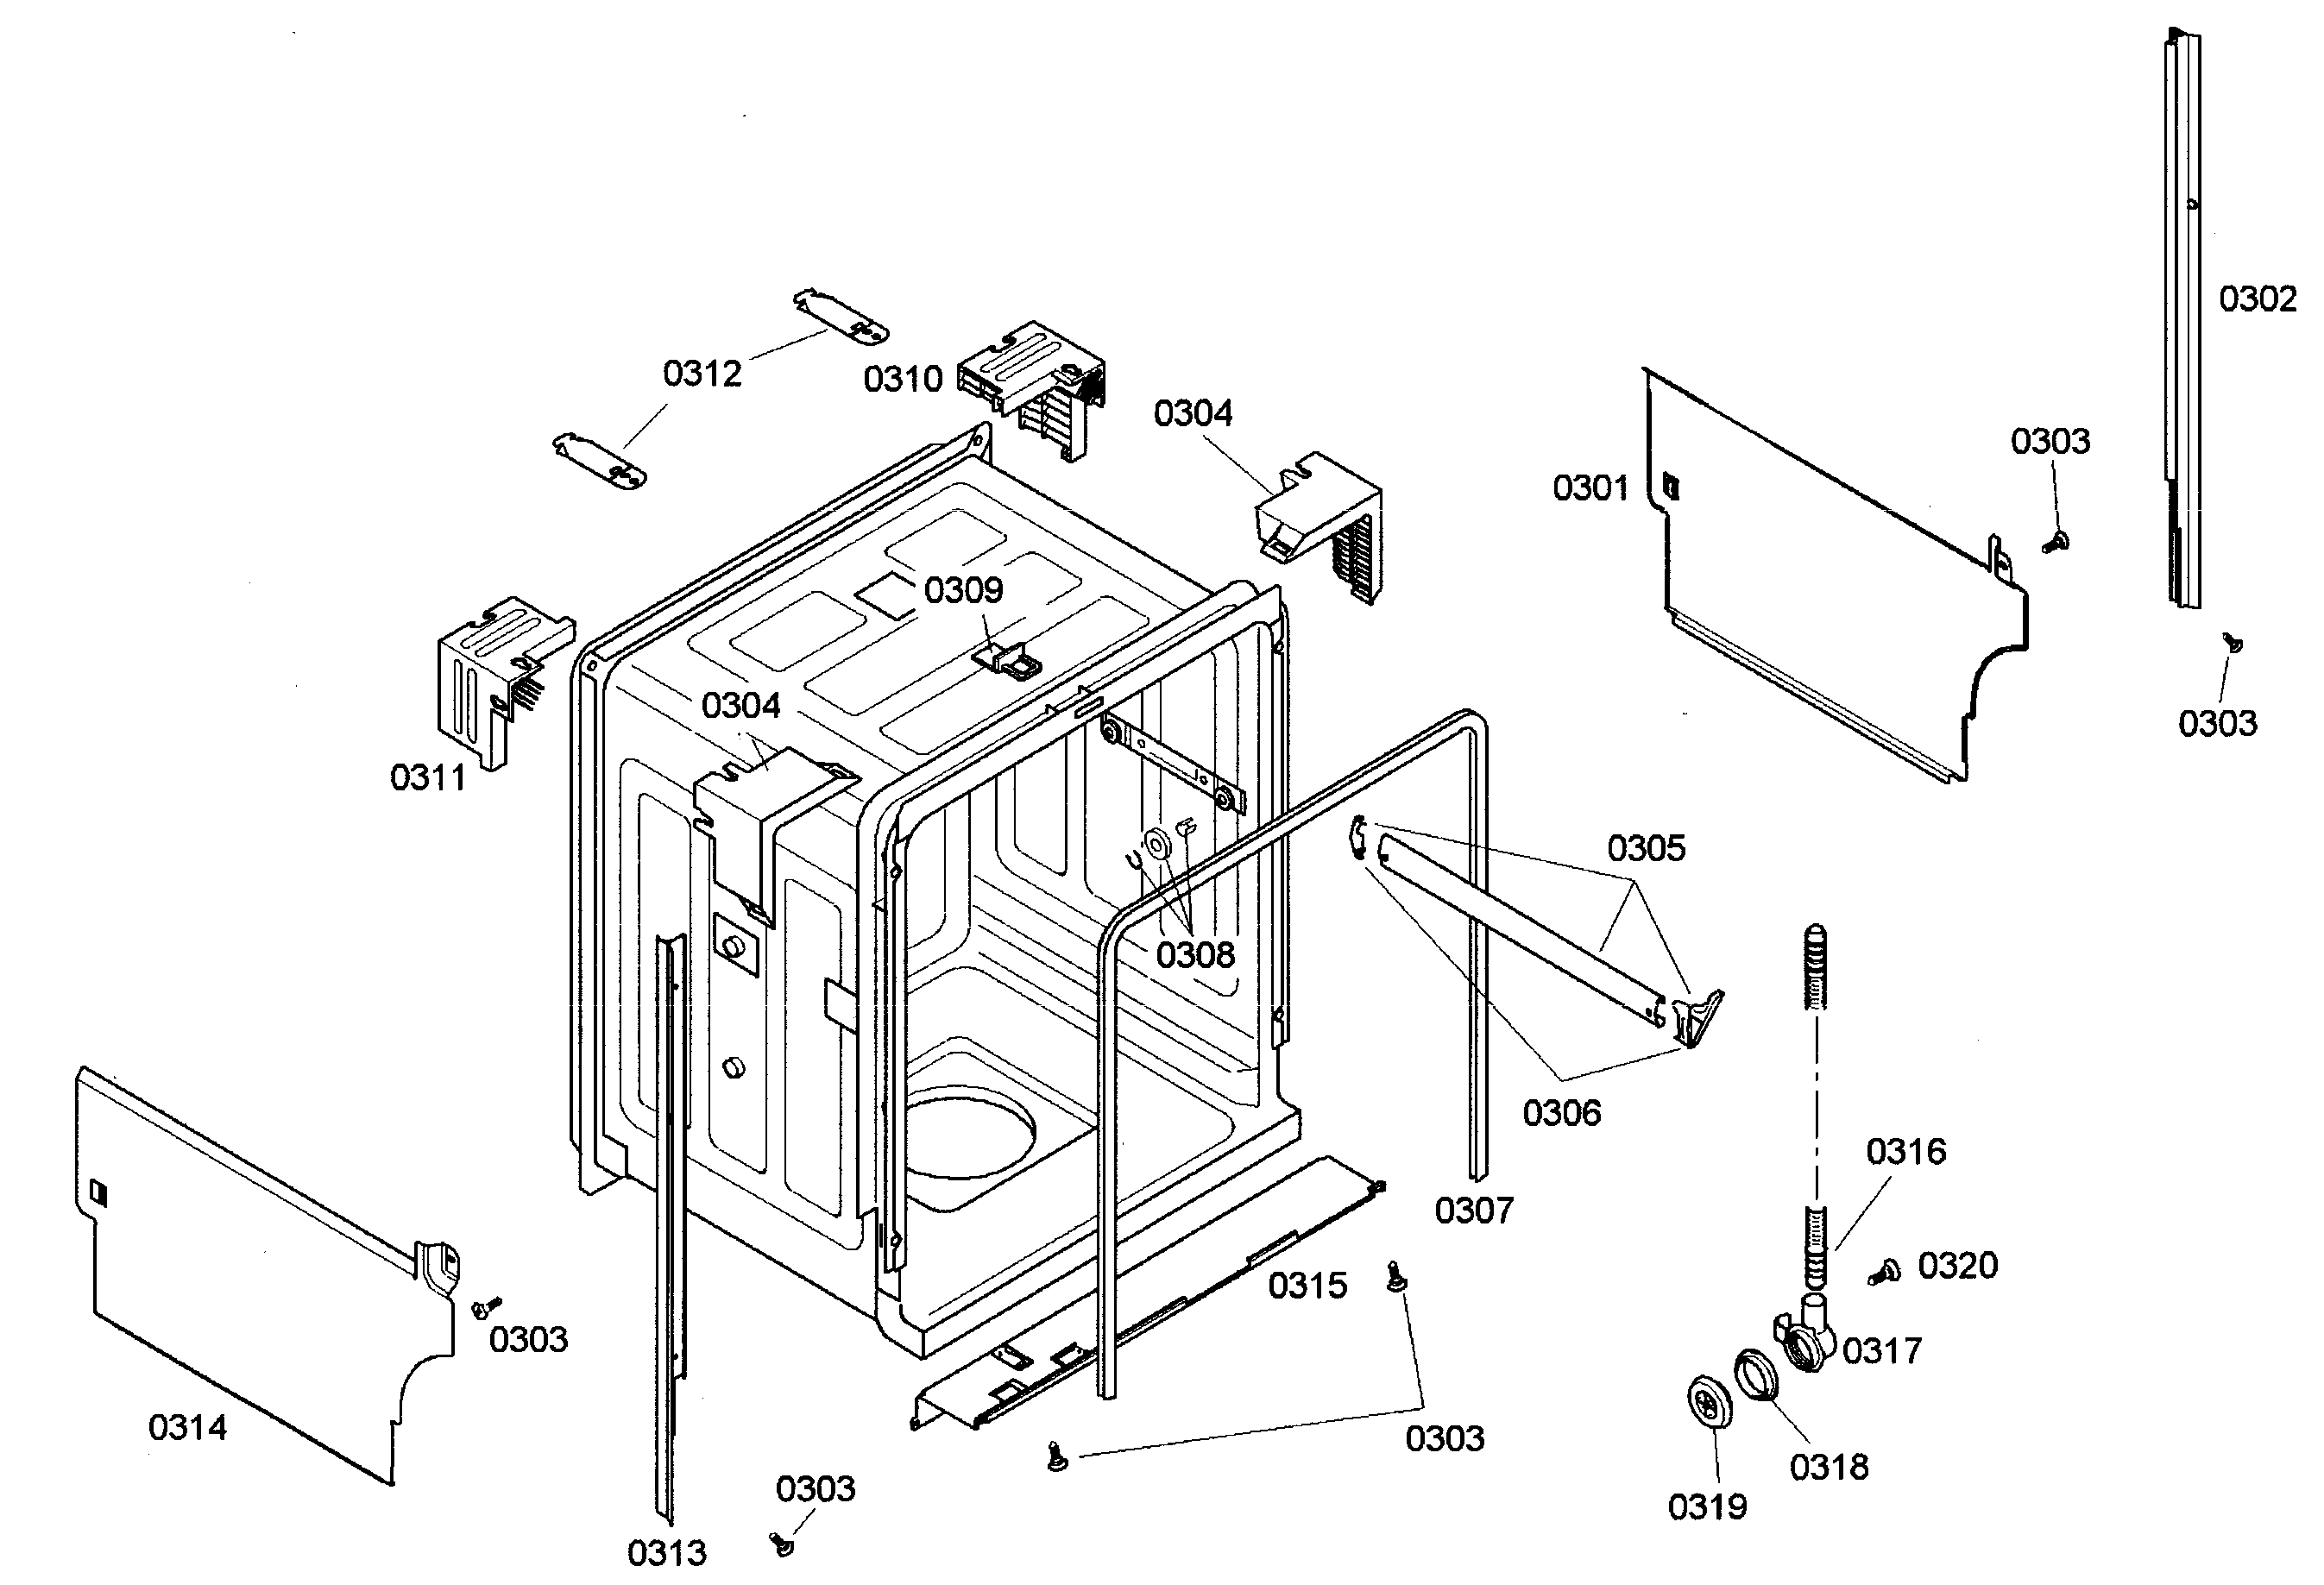 CABINET Diagram & Parts List for Model she44c06uc40 Bosch